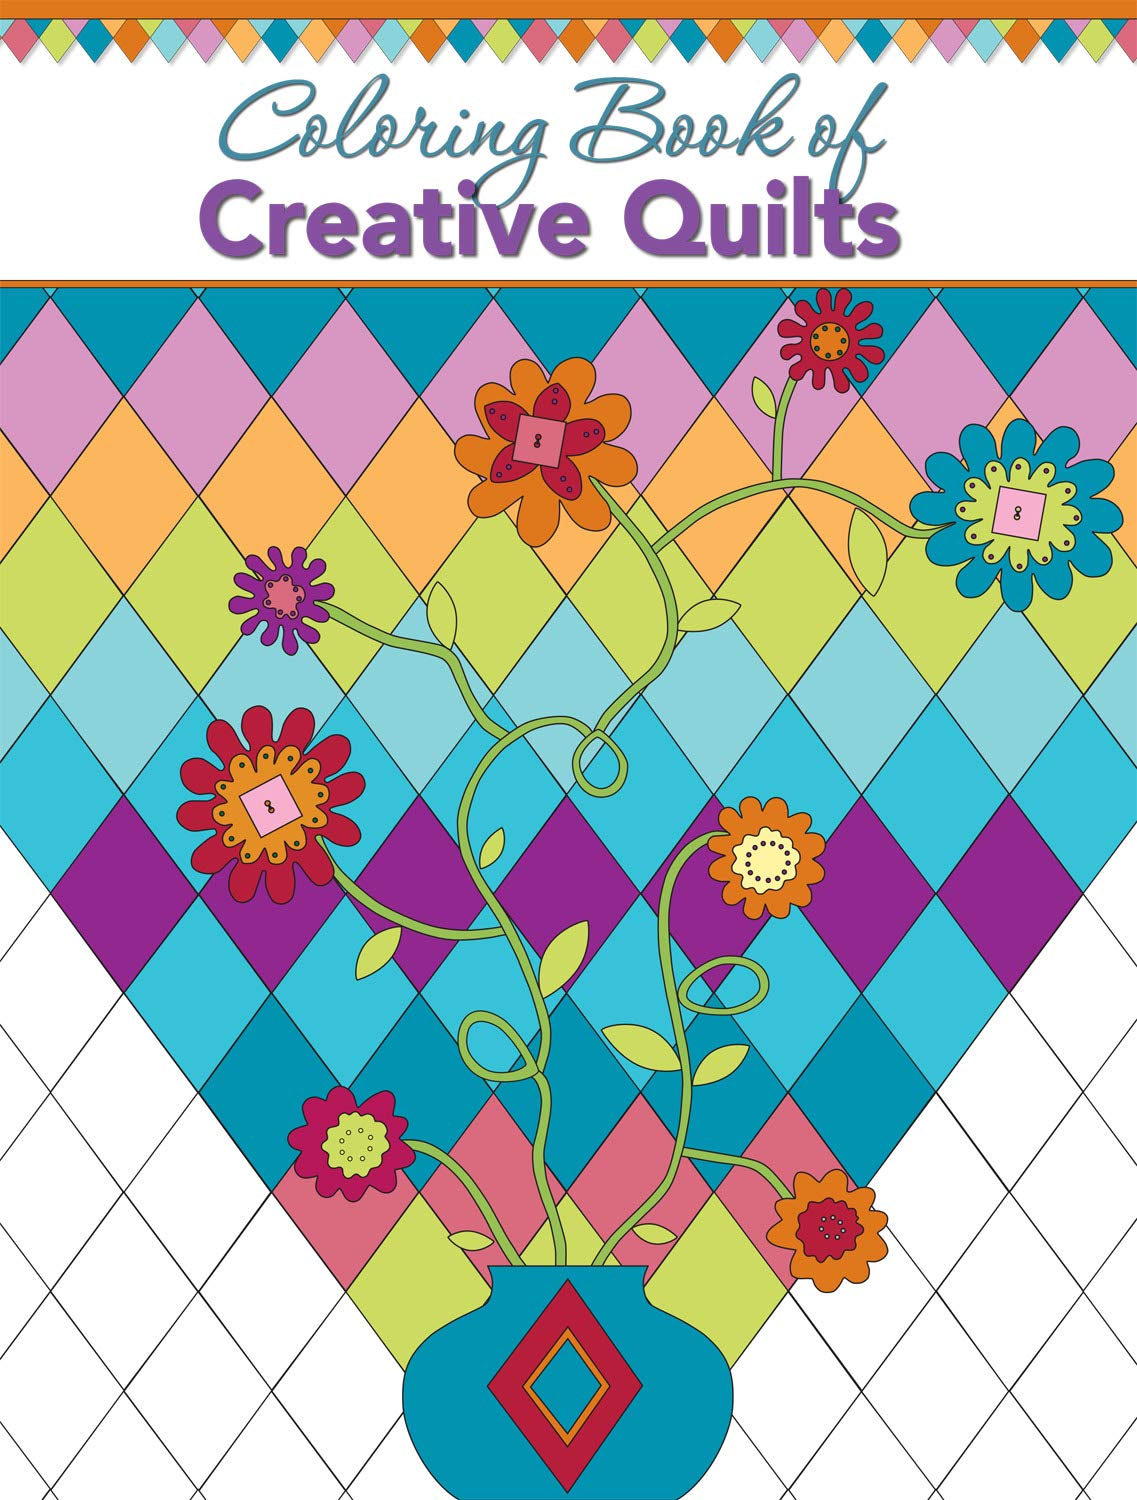 Amazon Com Coloring Book Of Creative Quilts Landauer 58 Inspiring Designs Of Classic Quilt Blocks To Help Quilters Experiment With Color For Your Next Quilting Project Or To Just Color Unwind And Relax